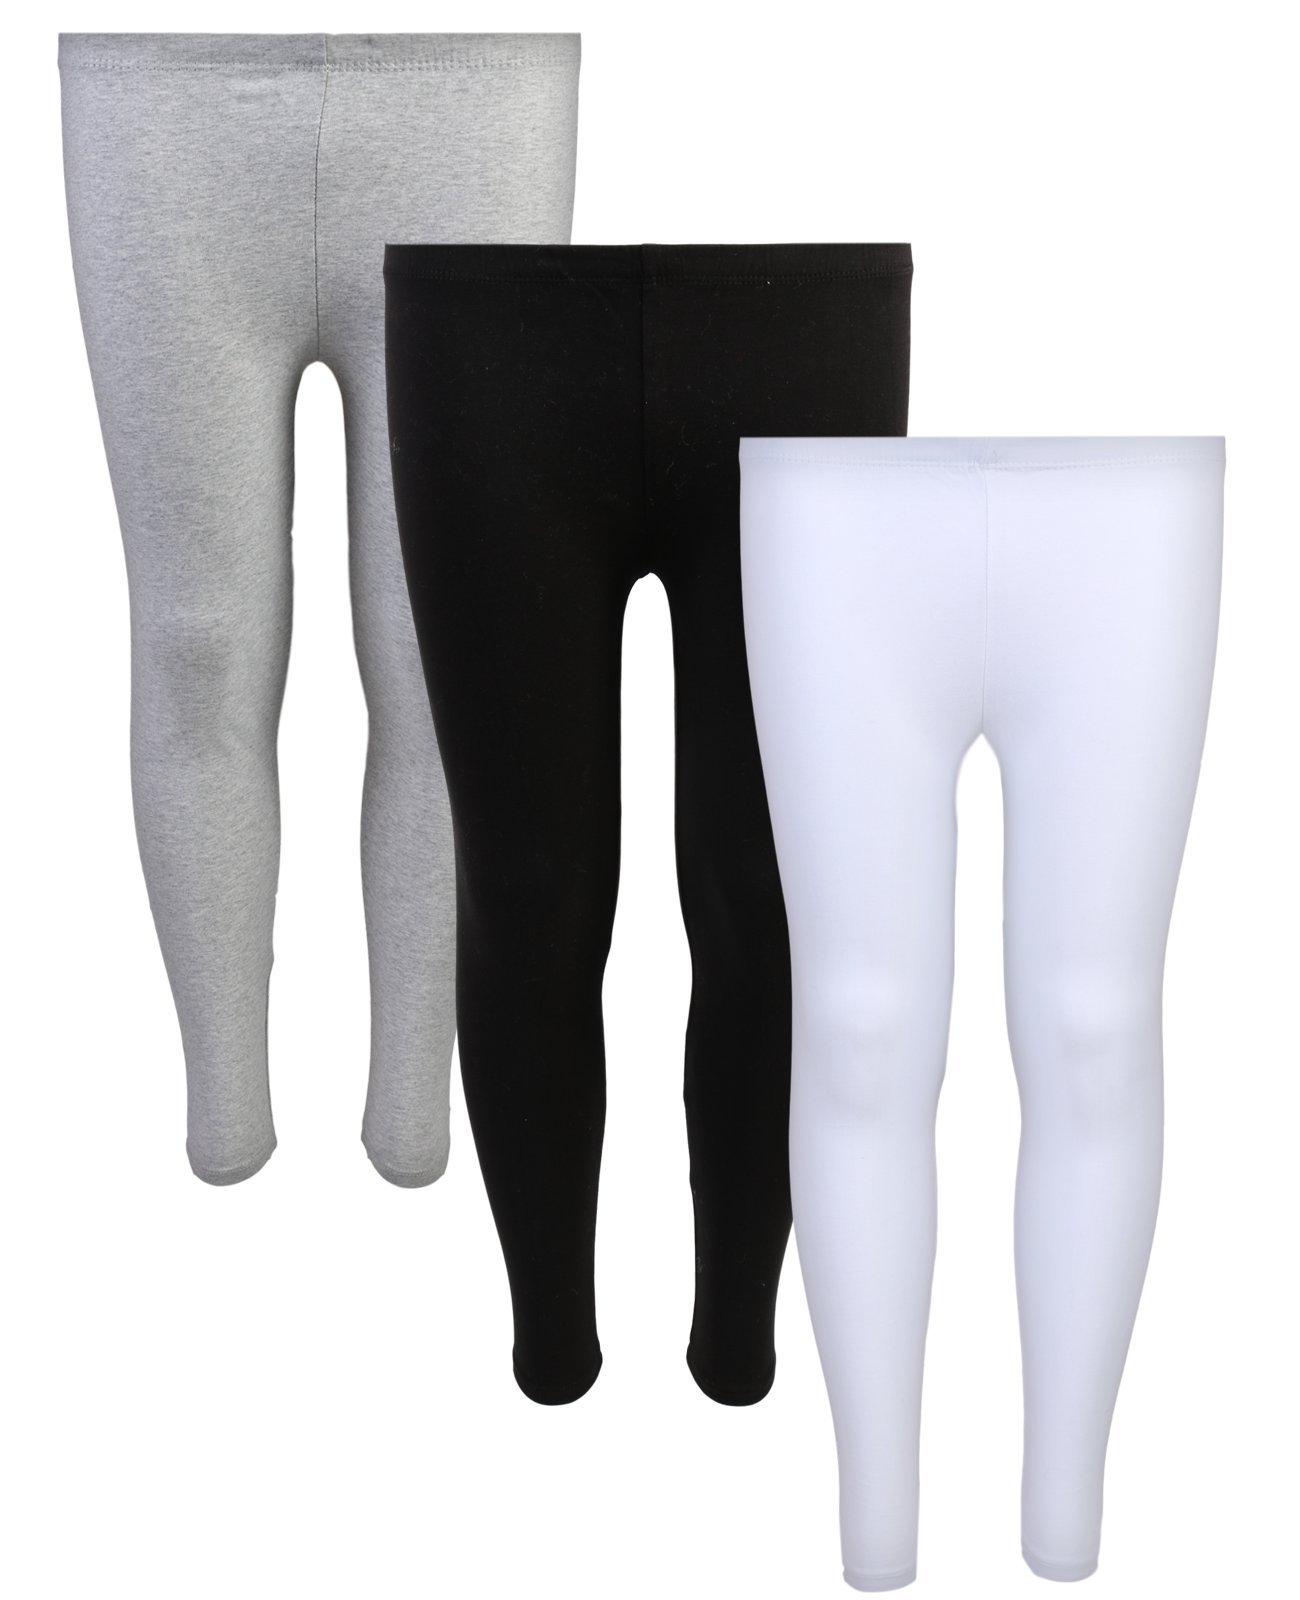 Delia's Girls Solid Leggings (Pack of 3) Black, Grey & White, 14/16 by dELiA*s